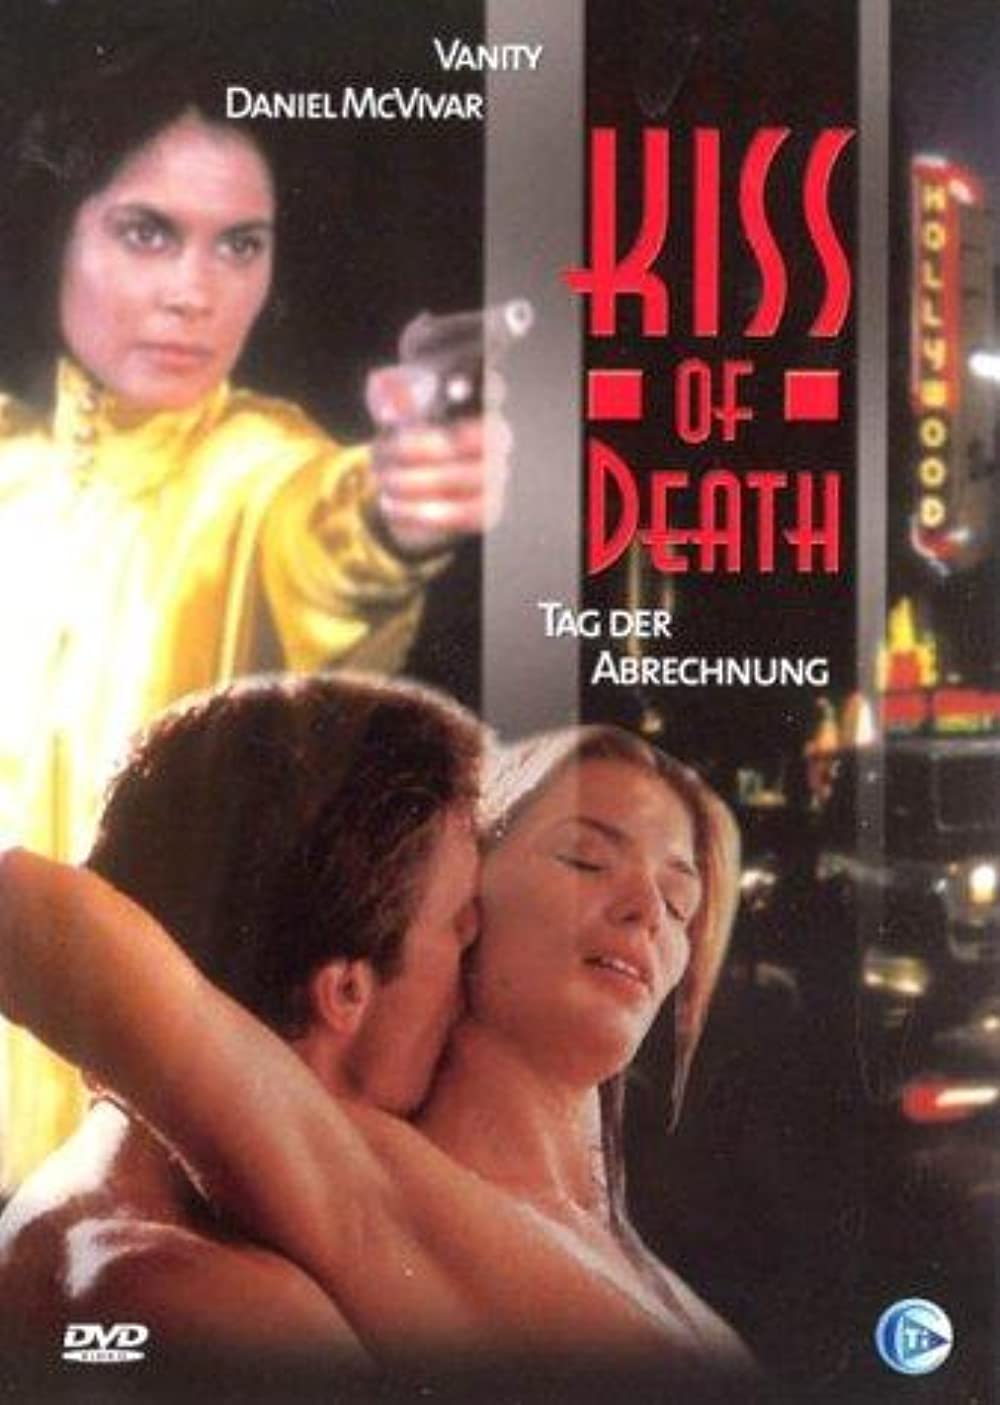 18+ Kiss of Death 1997 Hindi Dual Audio 720p UNRATED DVDRip 1GB Download